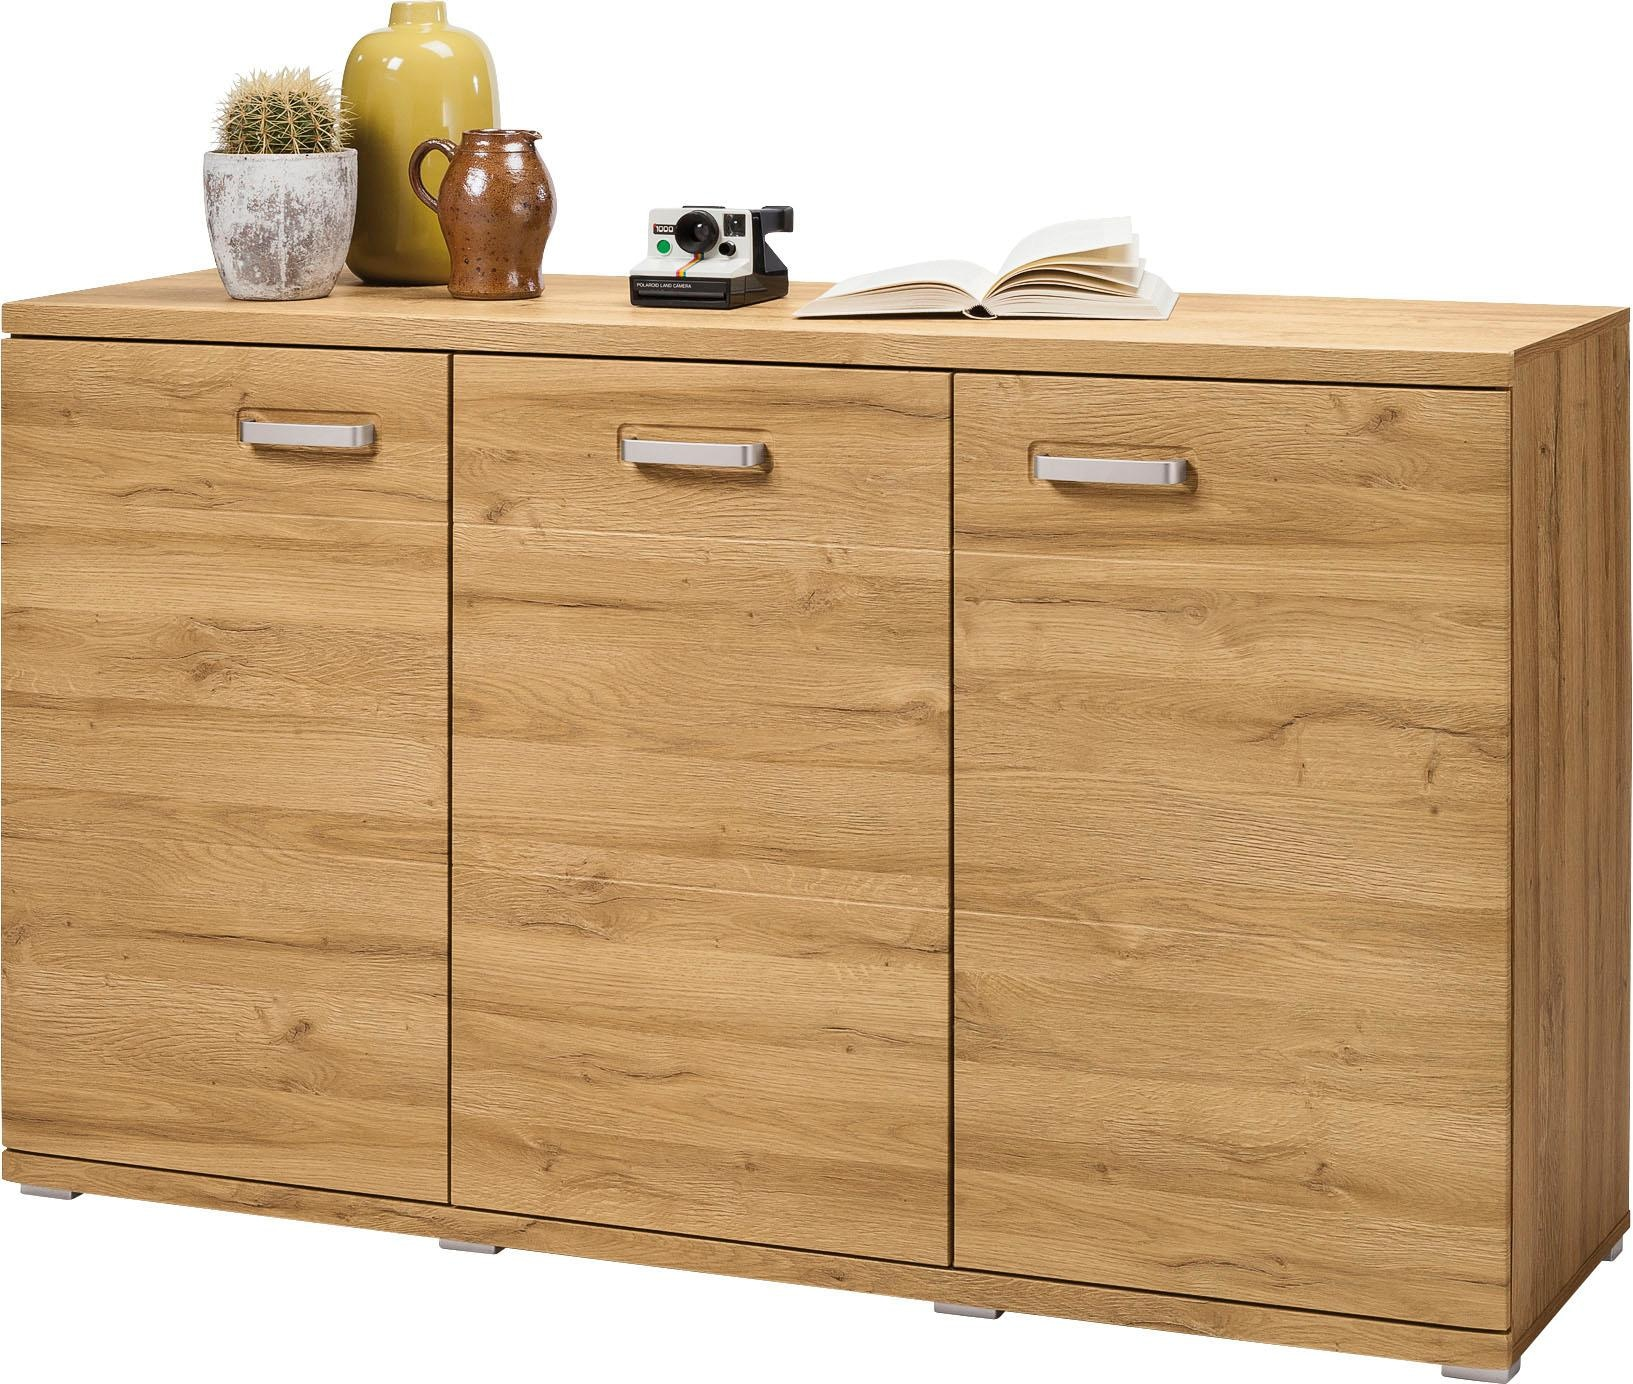 set one by Musterring Sideboard madison | 05900488556547